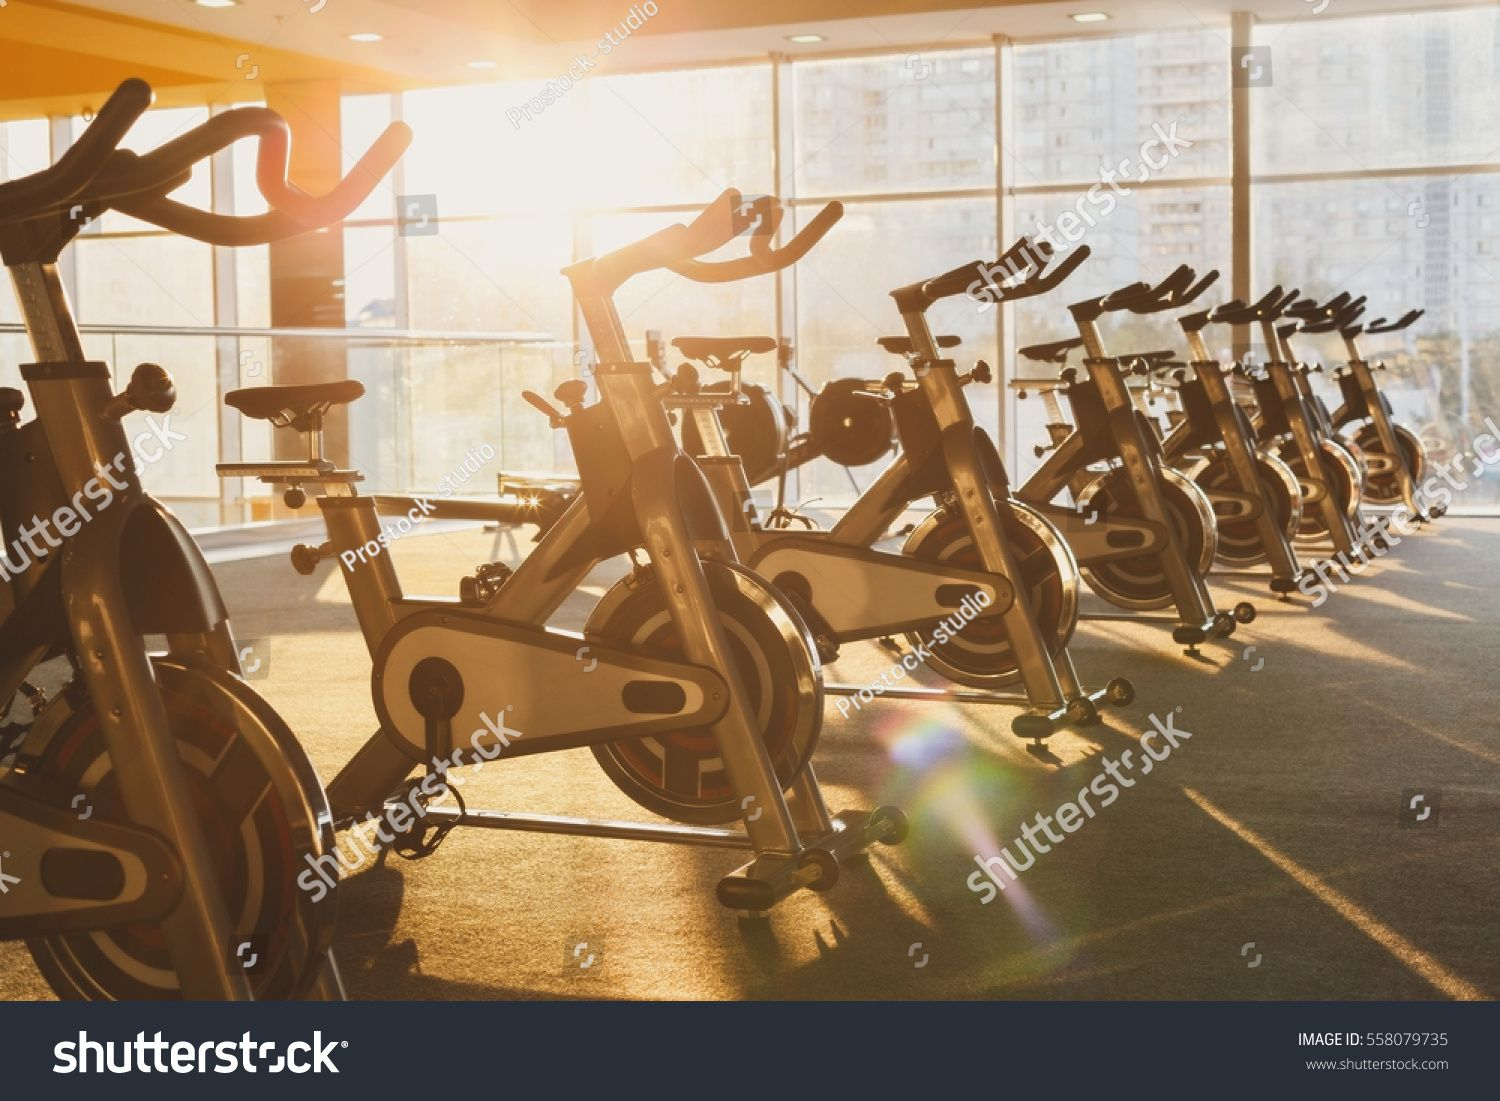 Modern gym interior with equipment. Fitness club with training exercise bikes in evening backlight....